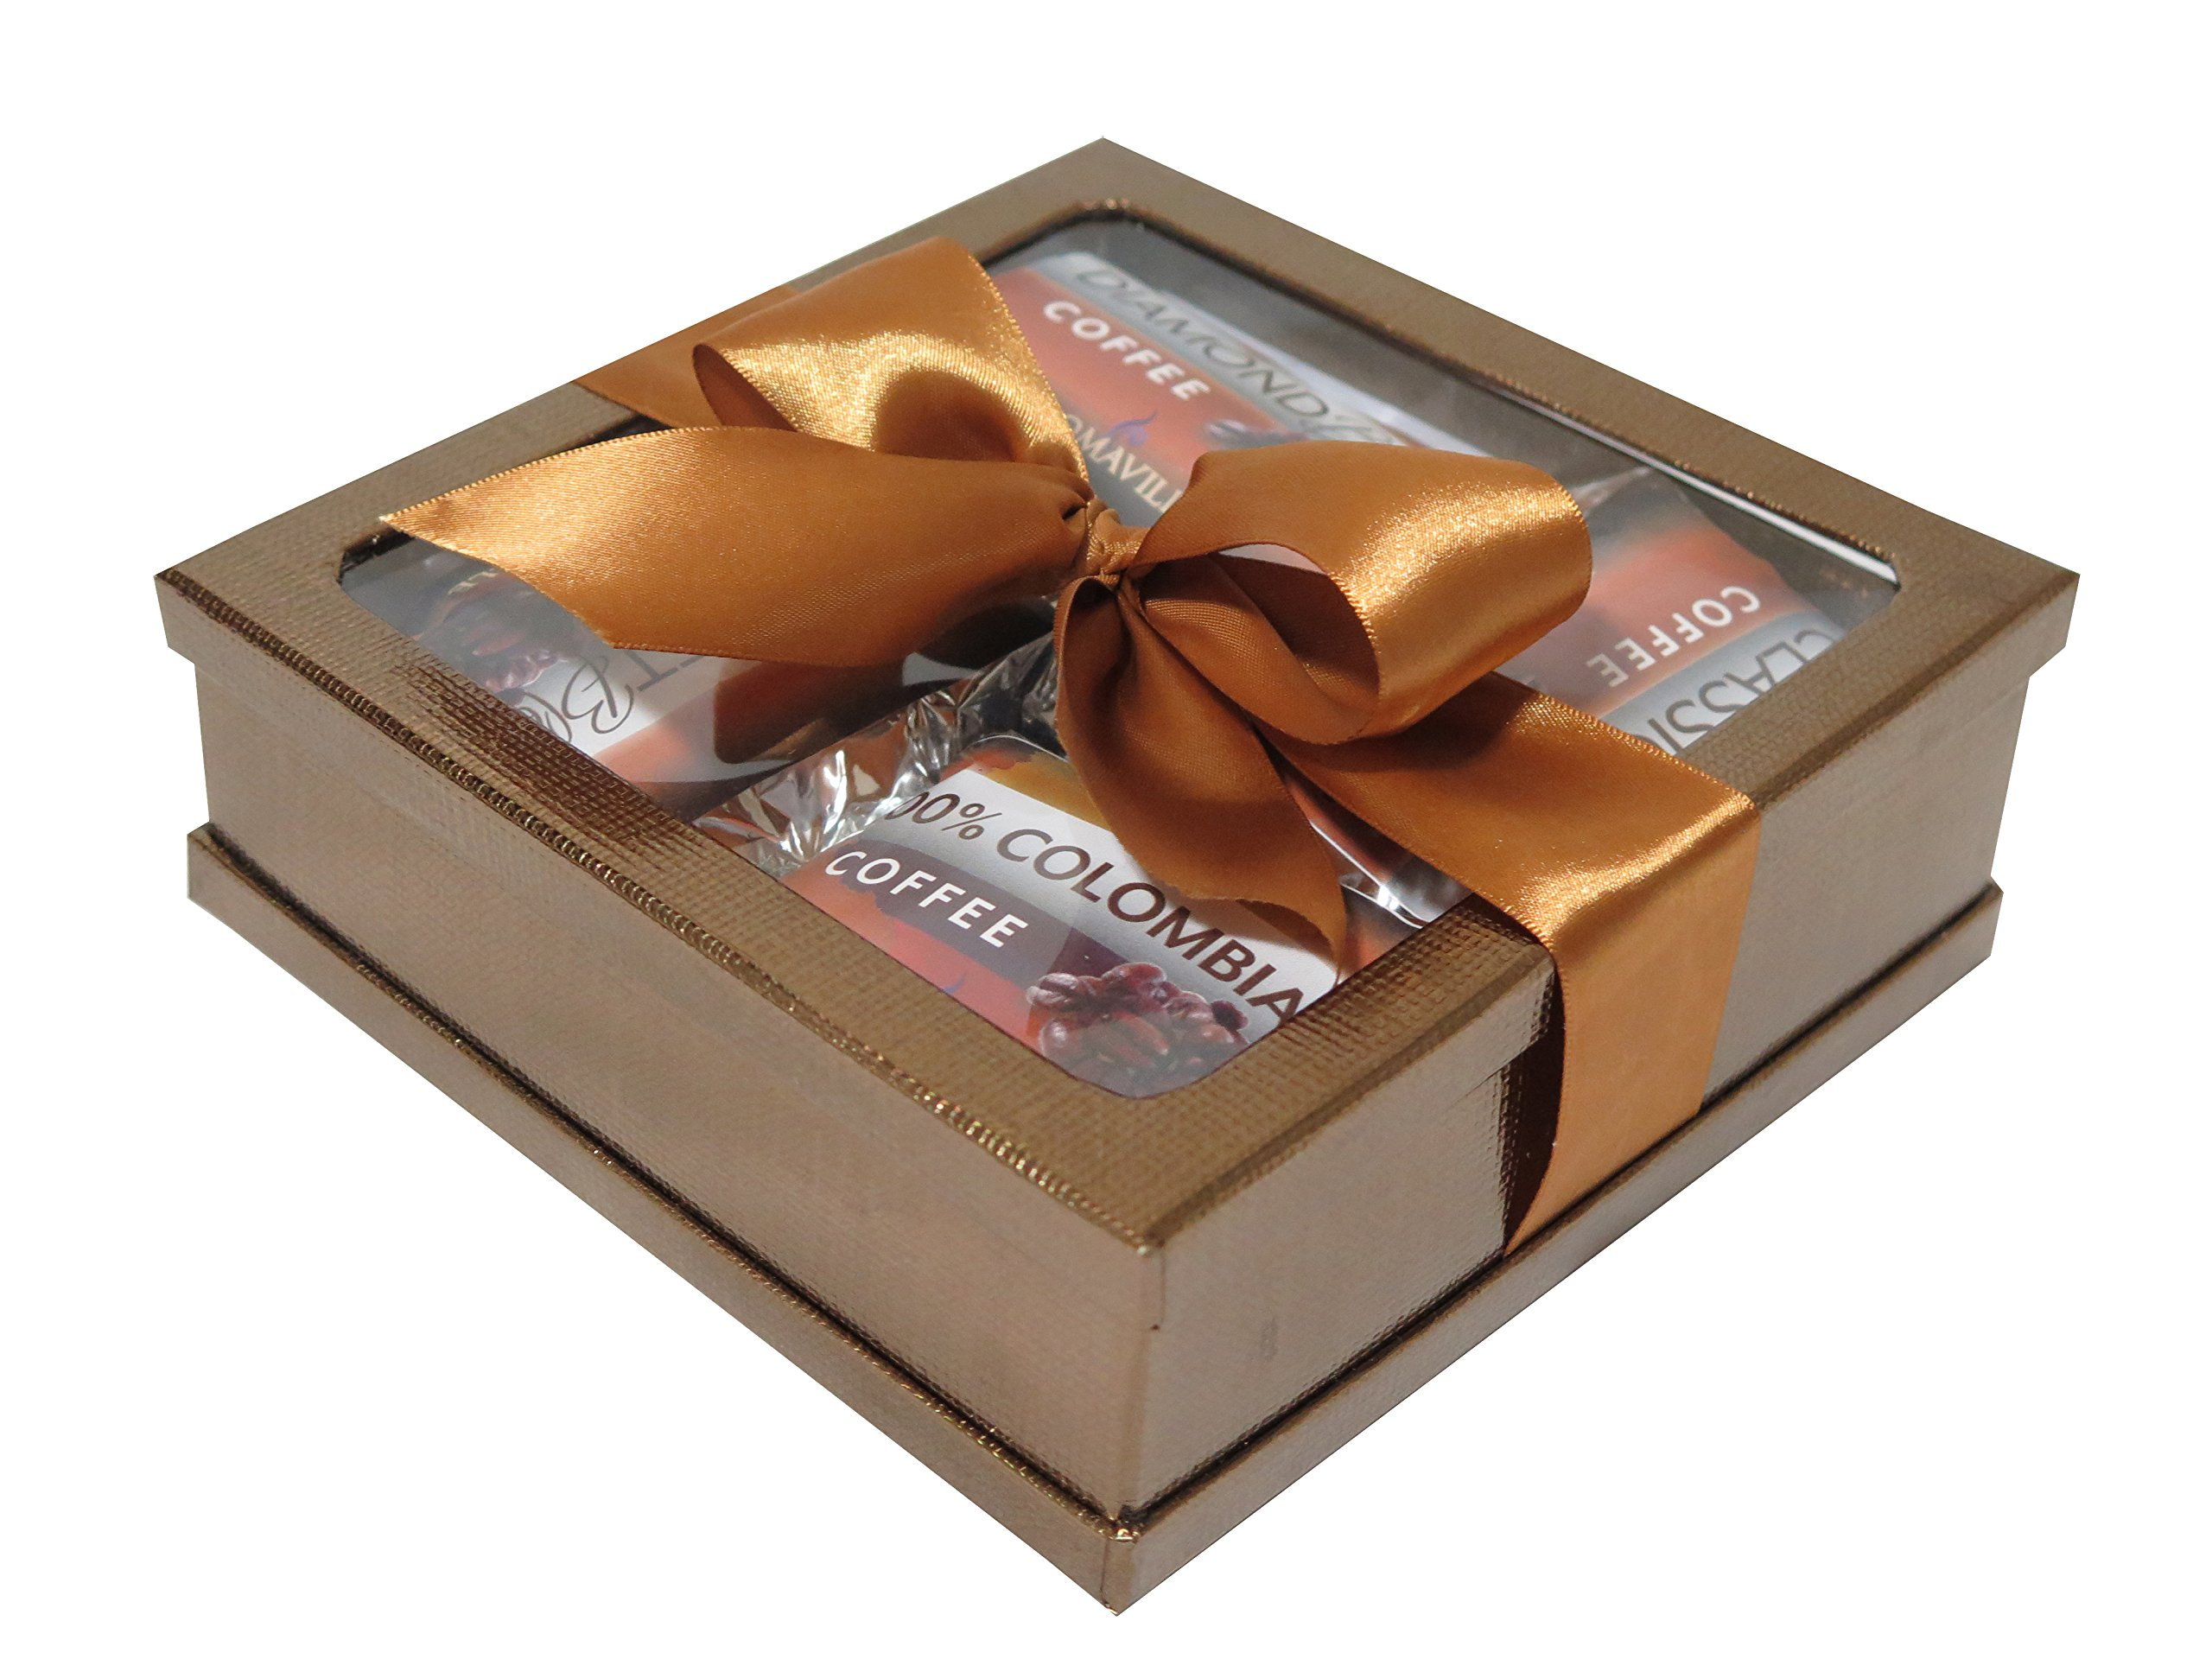 Amazon.com : Holiday Hot Cocoa Drink Mix Gift Set for Christmas ...